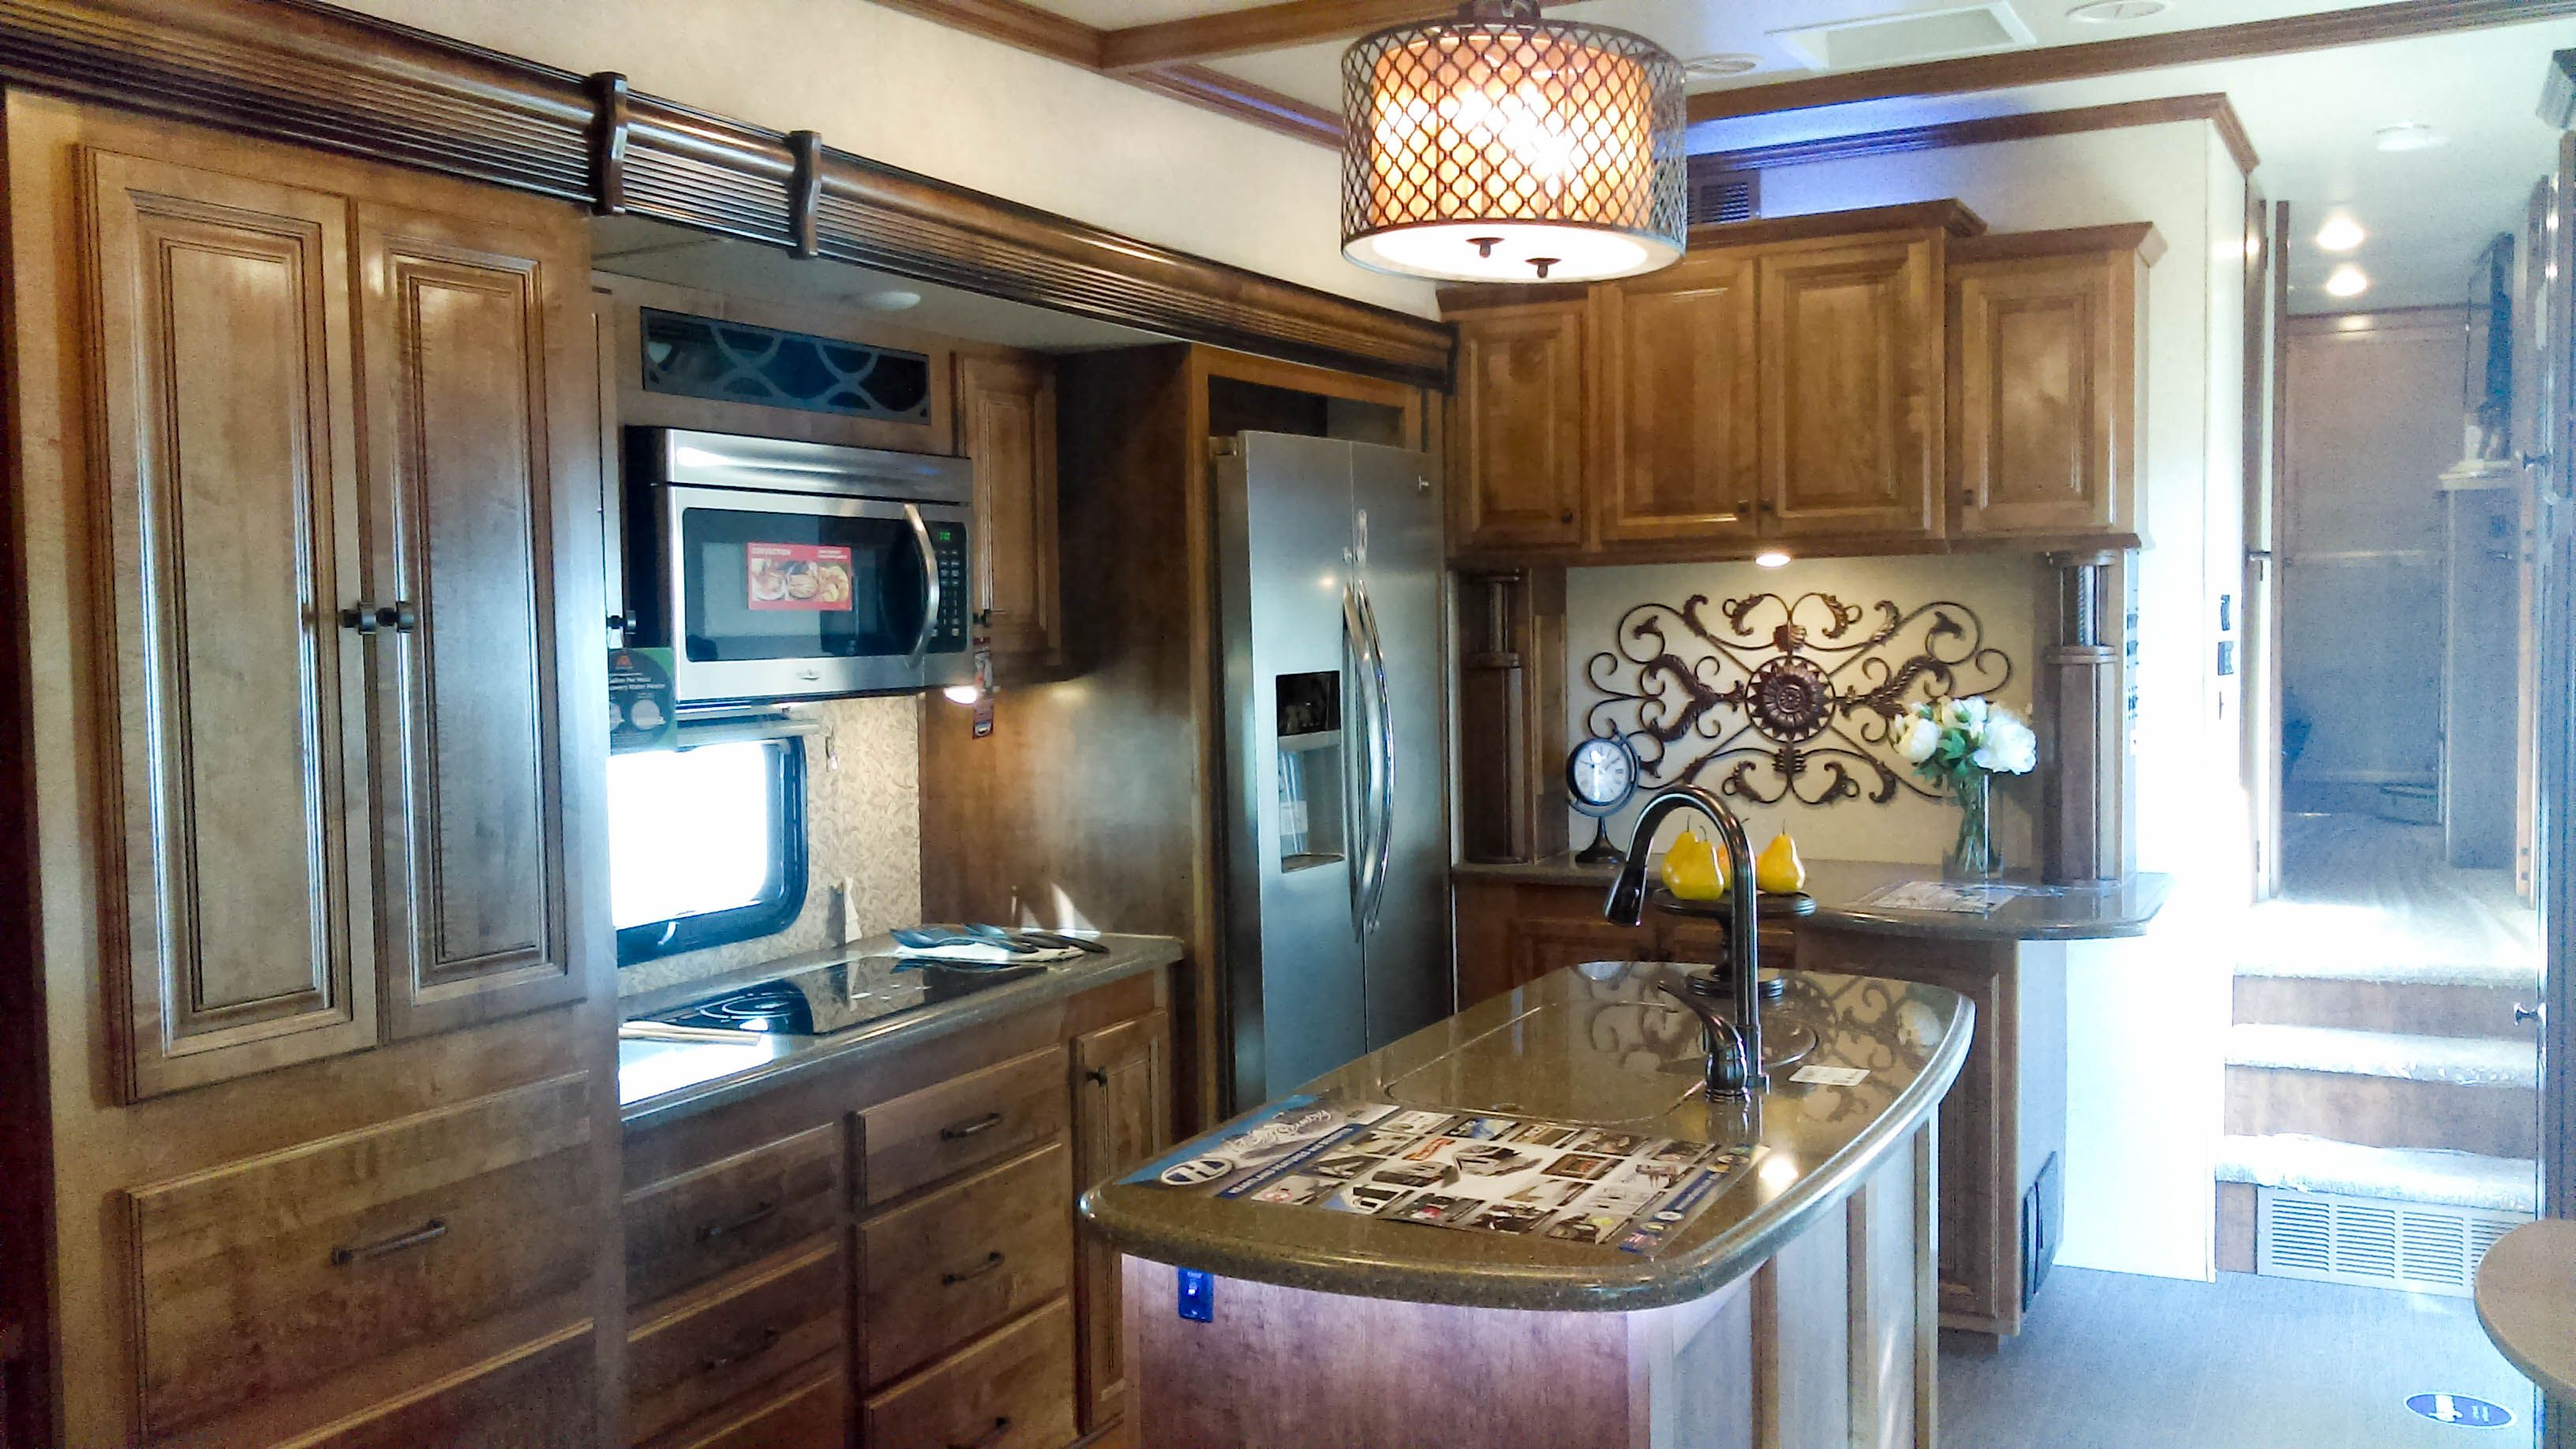 A Glimpse Of The 2016 Big Country 3650rl Where Price Practicality And Features Intersect Myheartland Bigcountry Gallery Ht Big Country Home Design